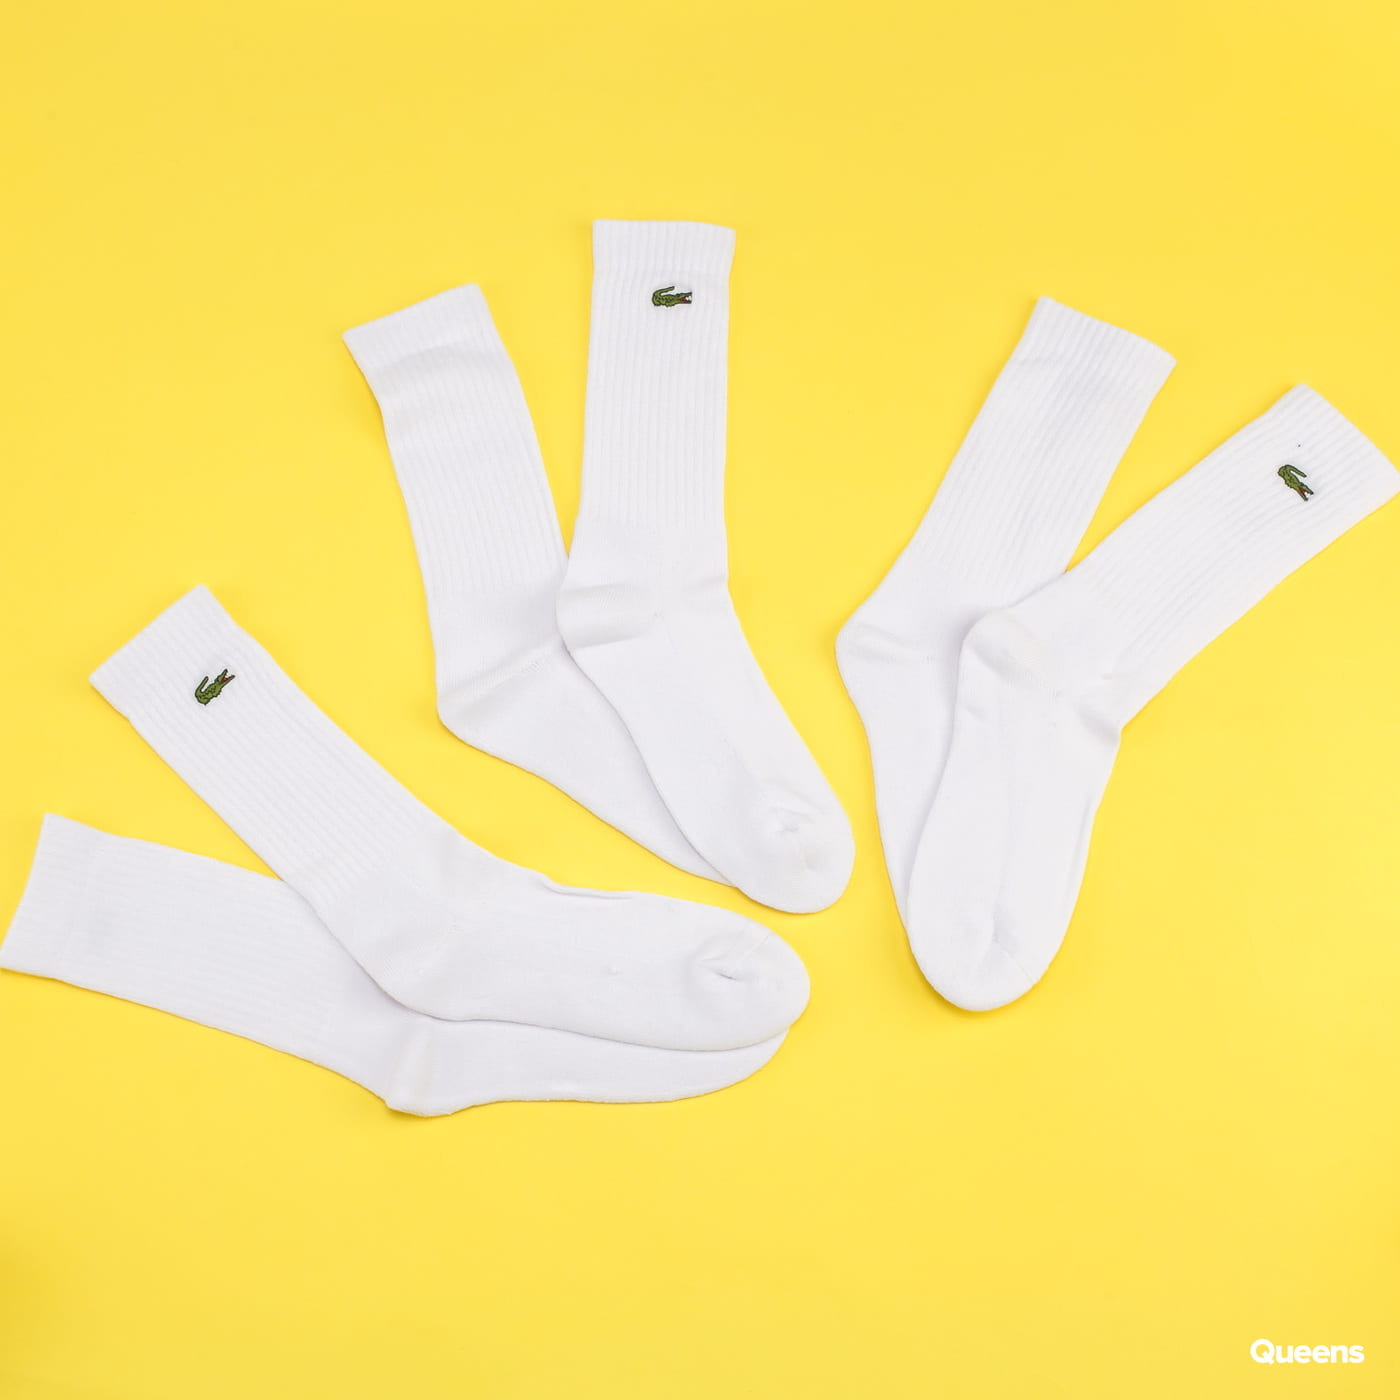 LACOSTE 3Pack Crew Cut Socks blue / turquoise